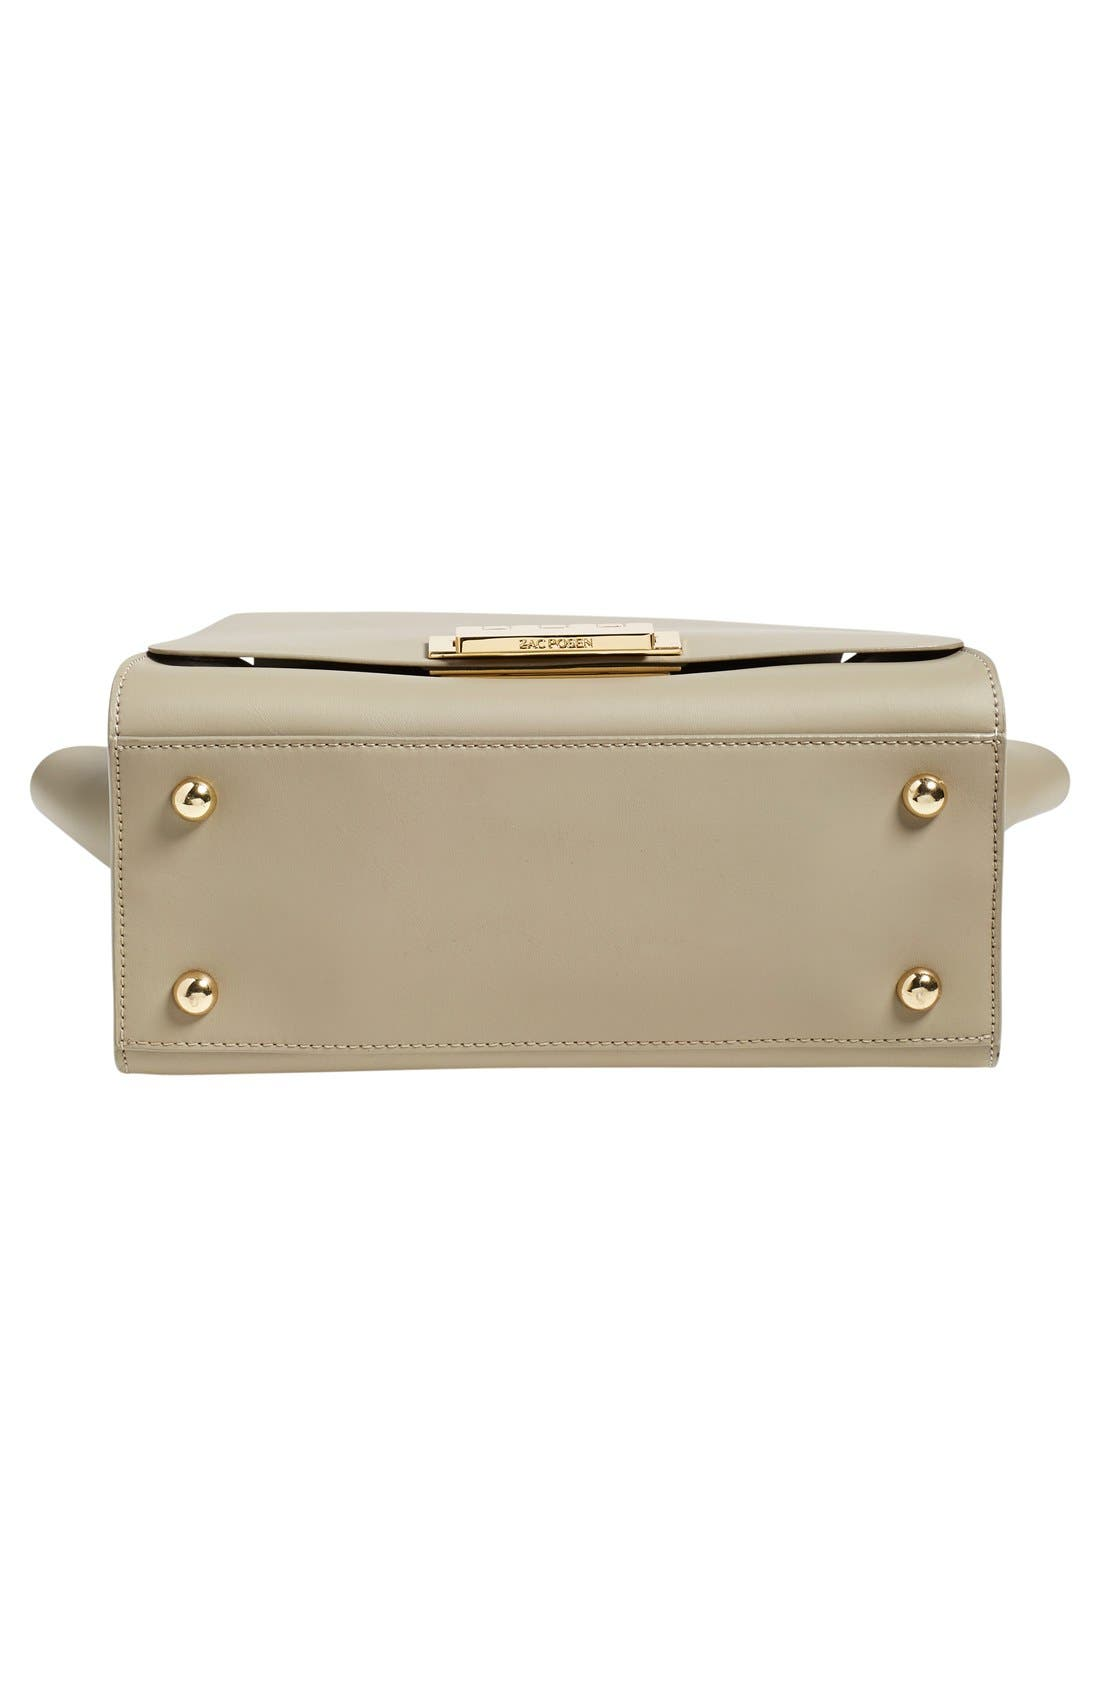 'Eartha' Soft Top Handle Satchel,                             Alternate thumbnail 5, color,                             Beige